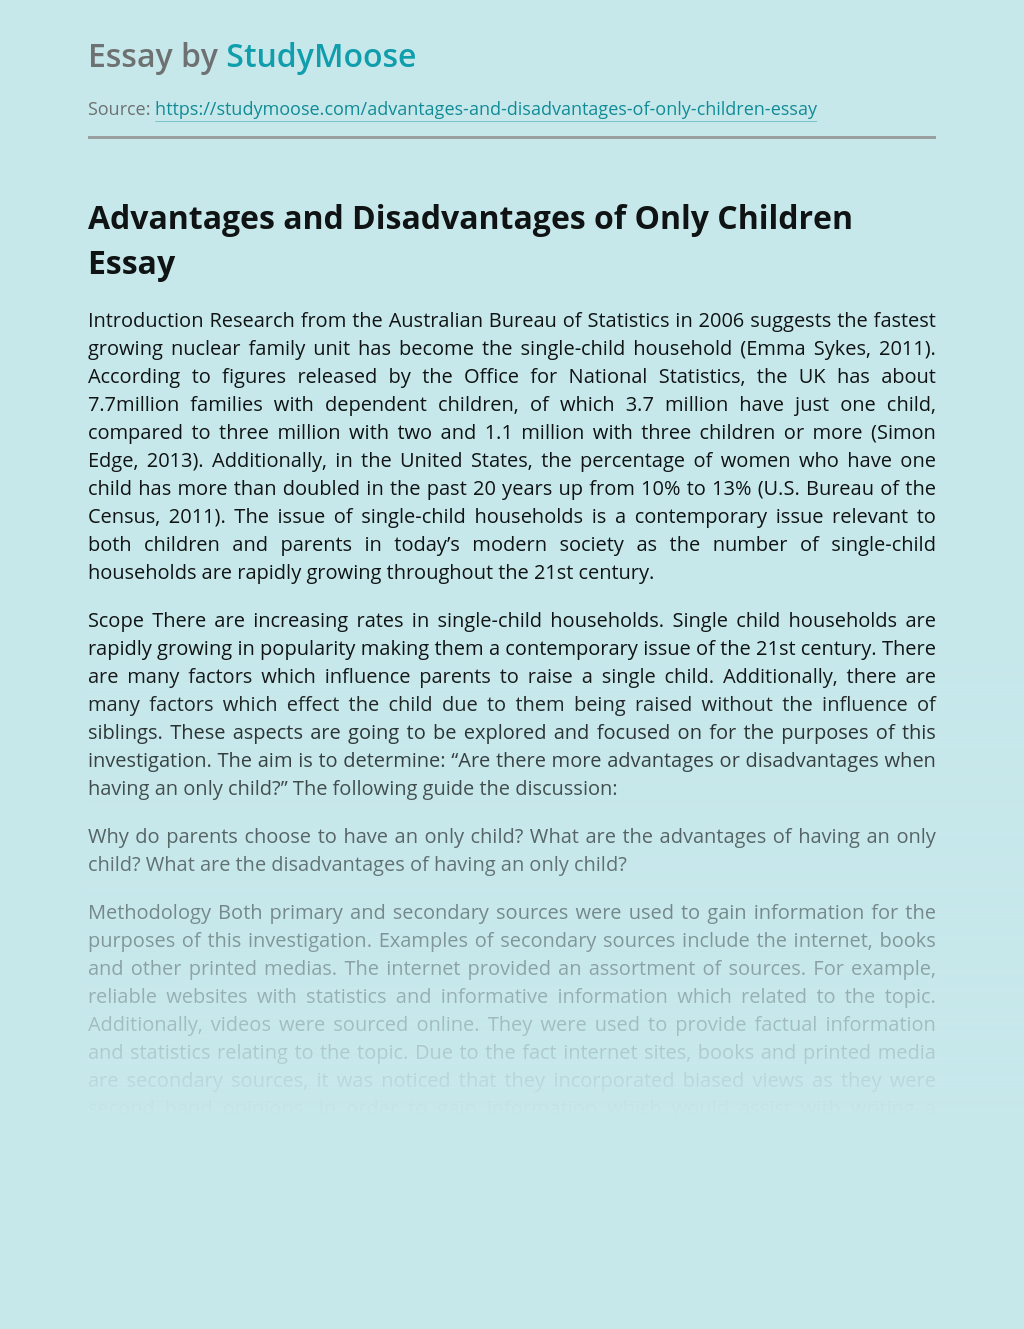 Advantages and Disadvantages of Only Children